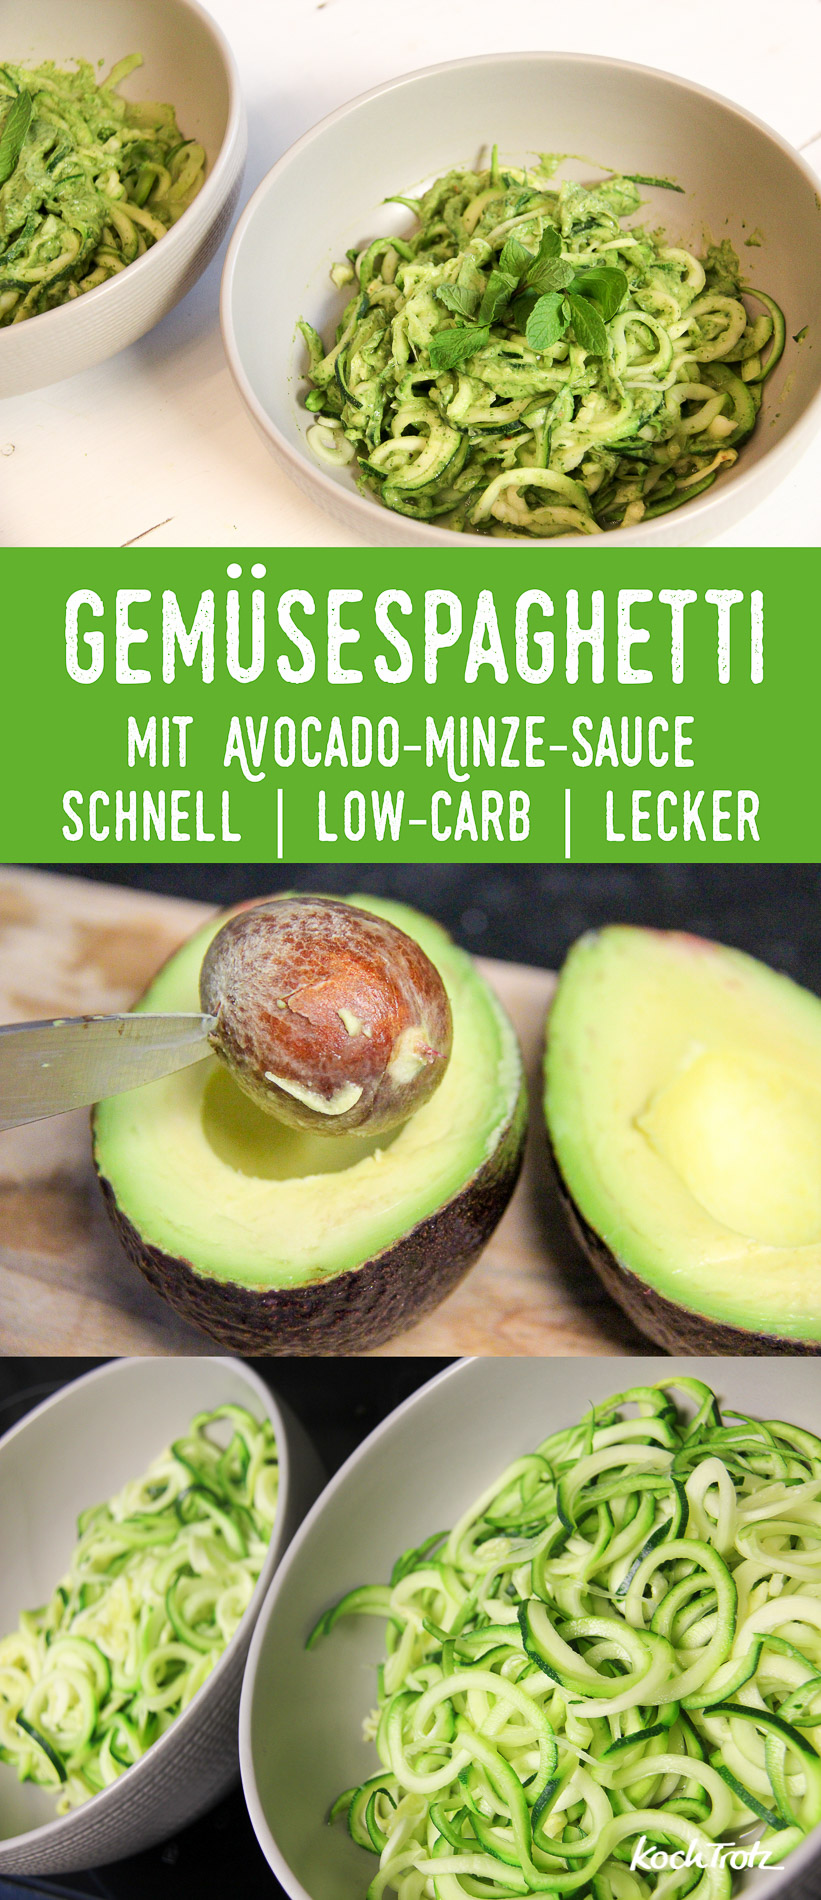 Gemüsespaghetti mit Avocado-Minze-Sauce | schnell | low-carb | lecker | Zoodles